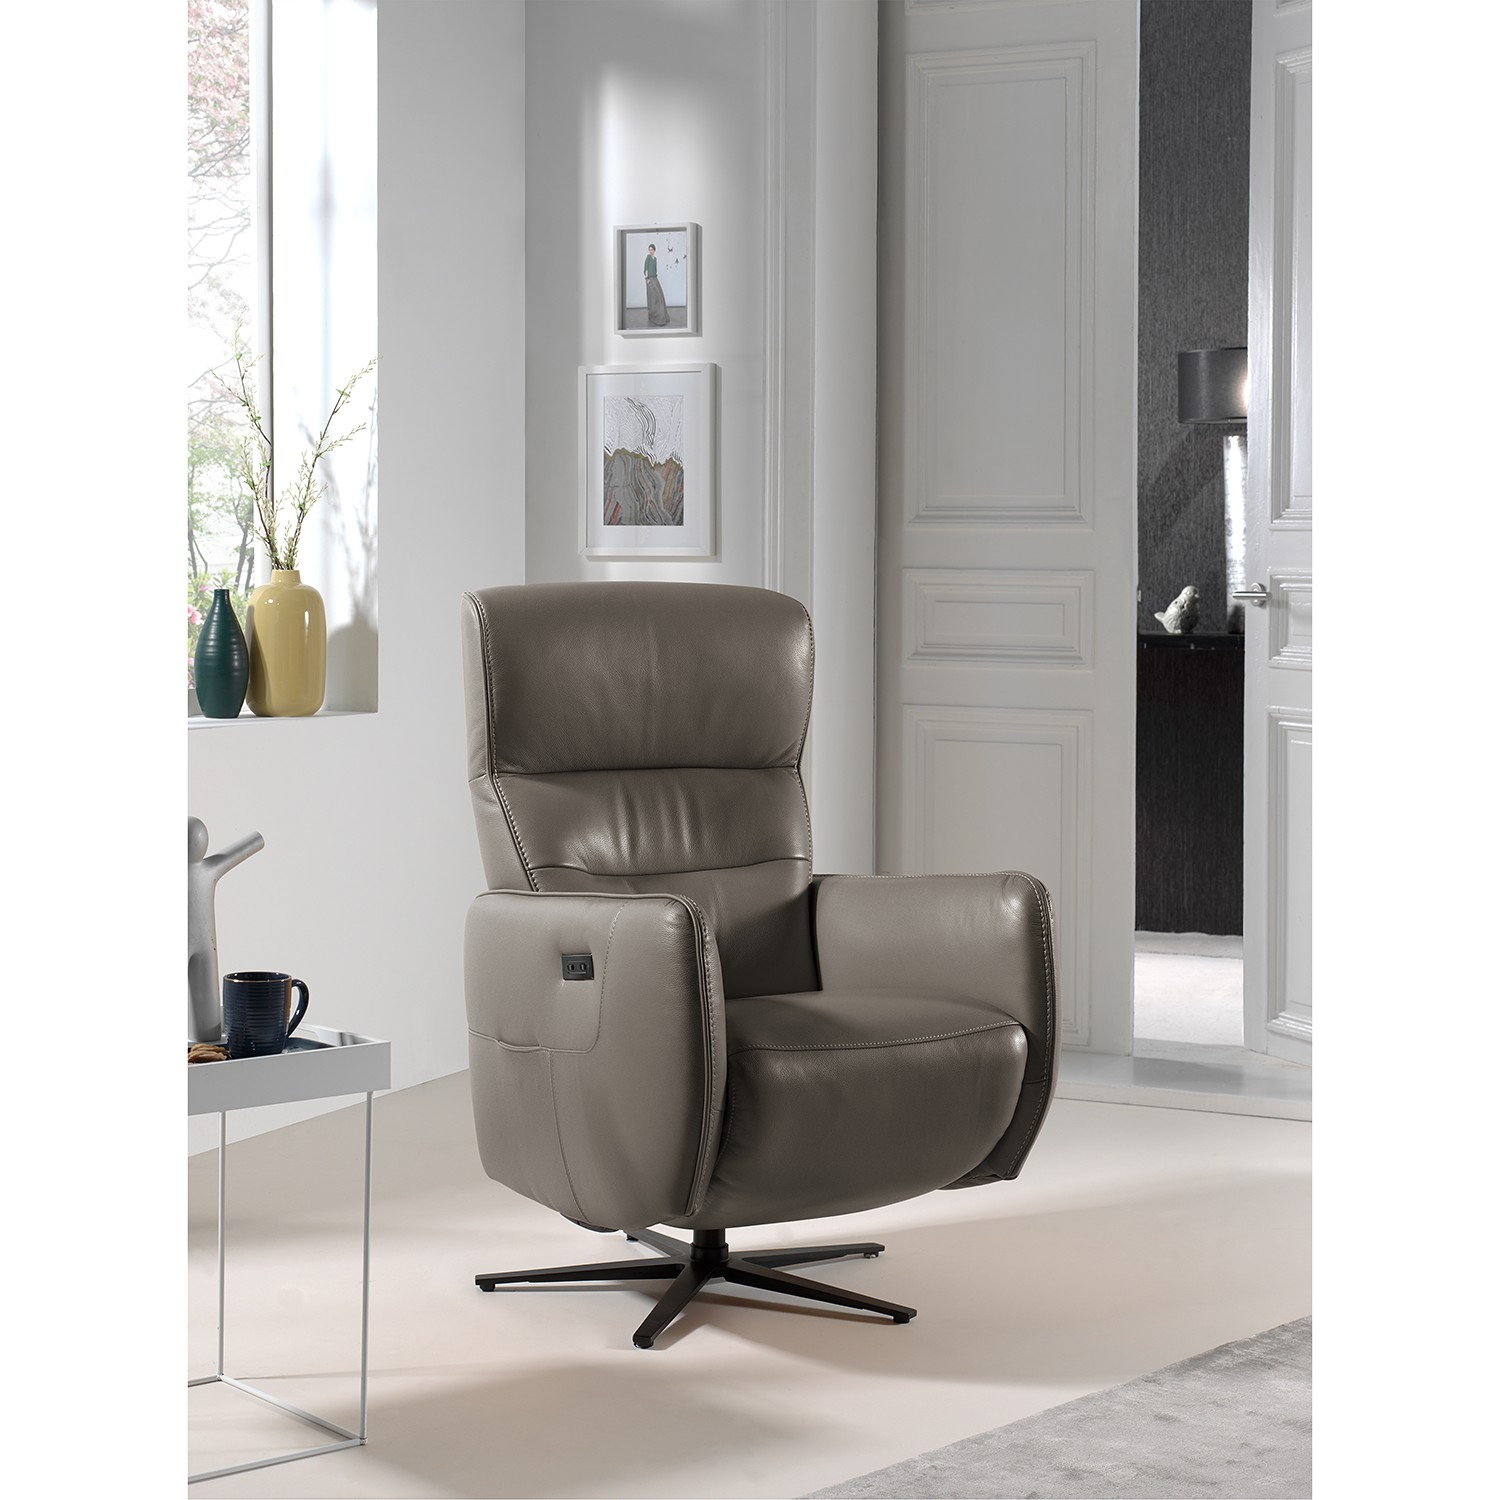 Fauteuil relax Amapa